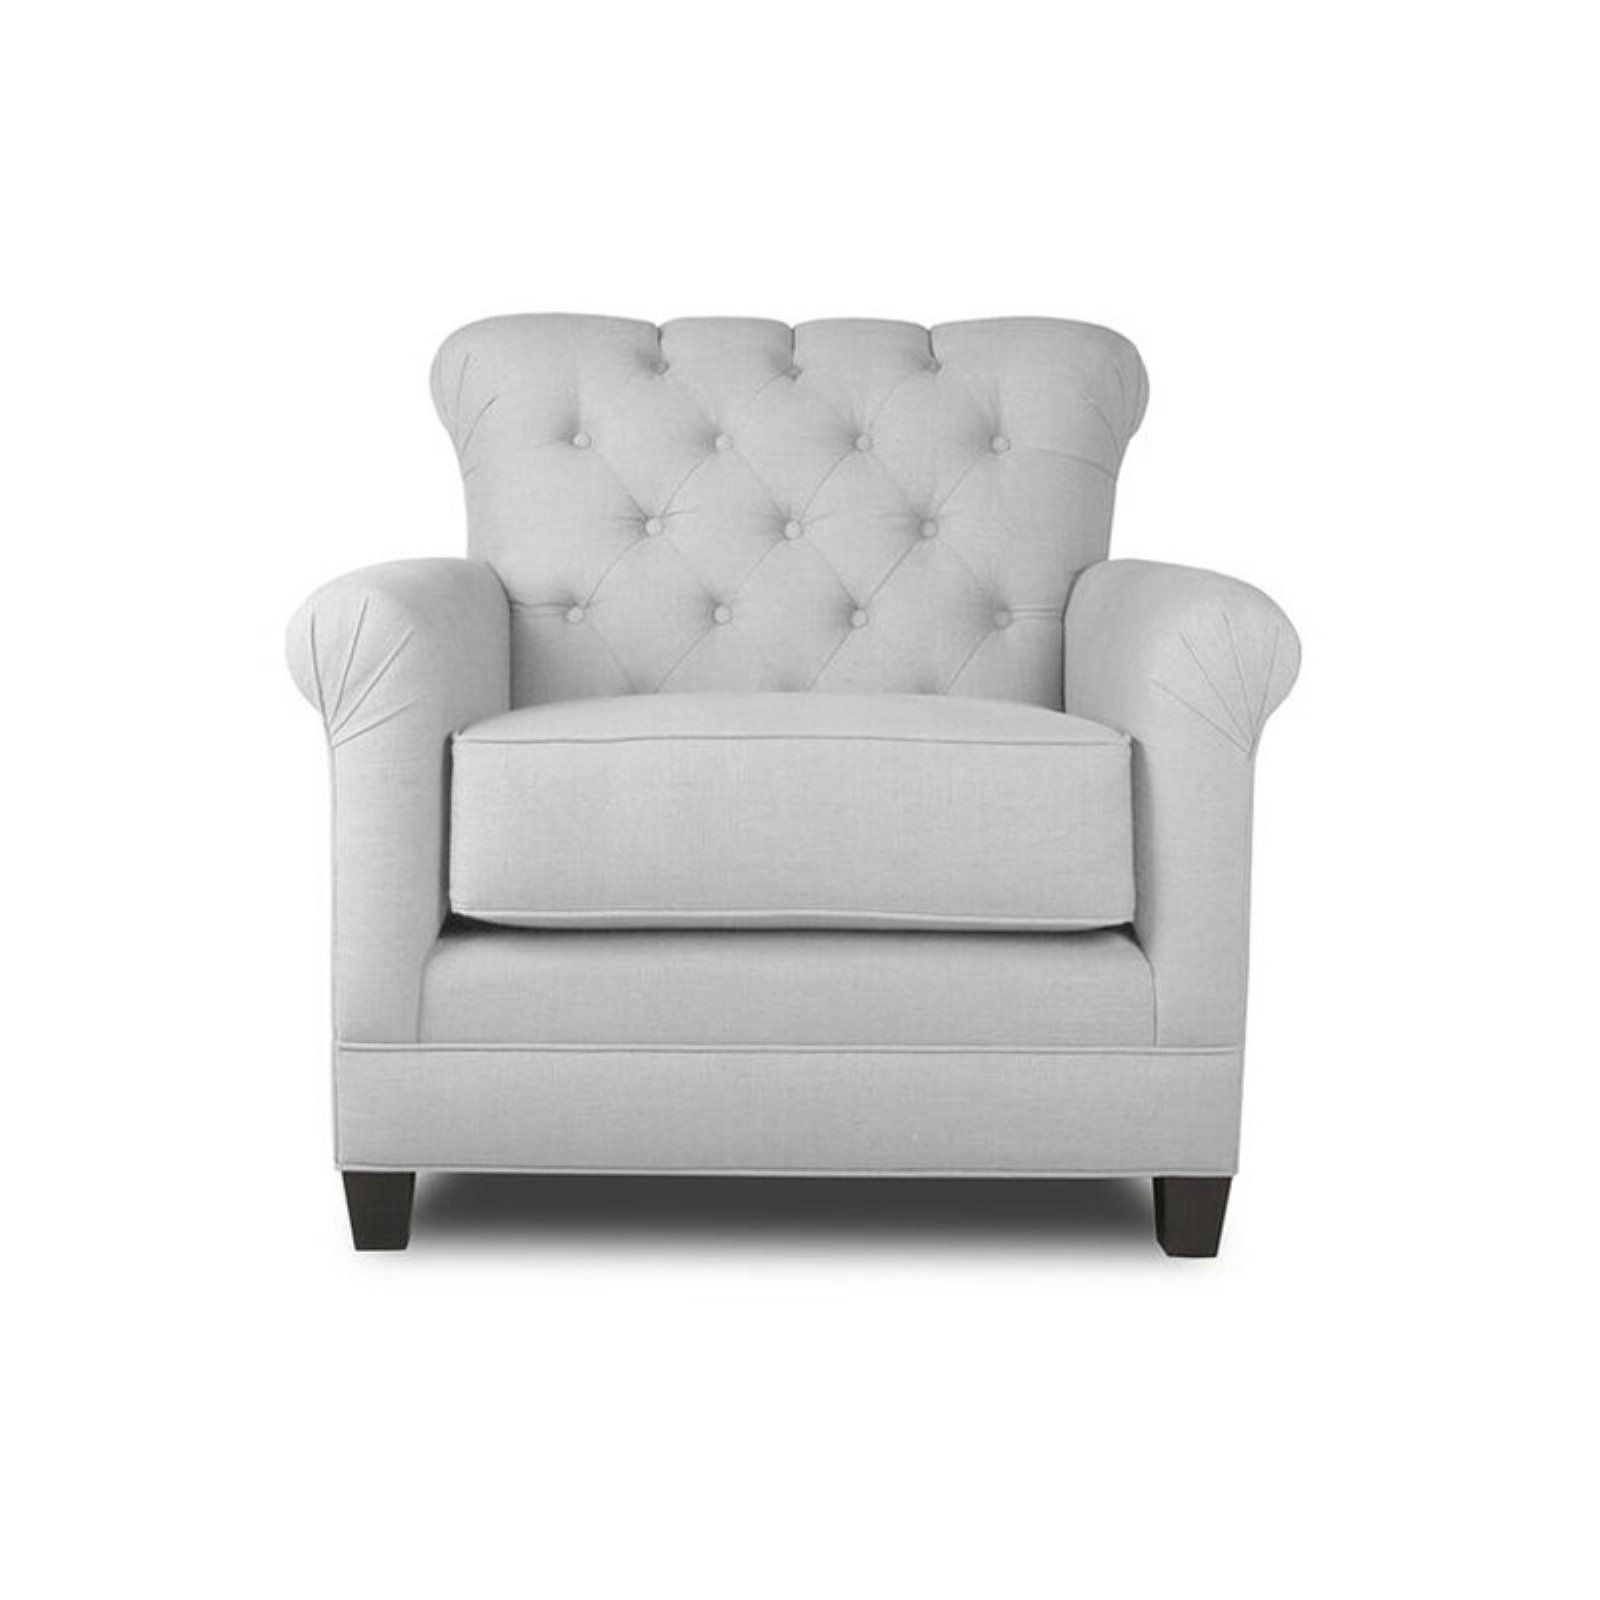 Amazing South Cone Delmar Tufted Accent Chair White In 2019 Tufted Ibusinesslaw Wood Chair Design Ideas Ibusinesslaworg